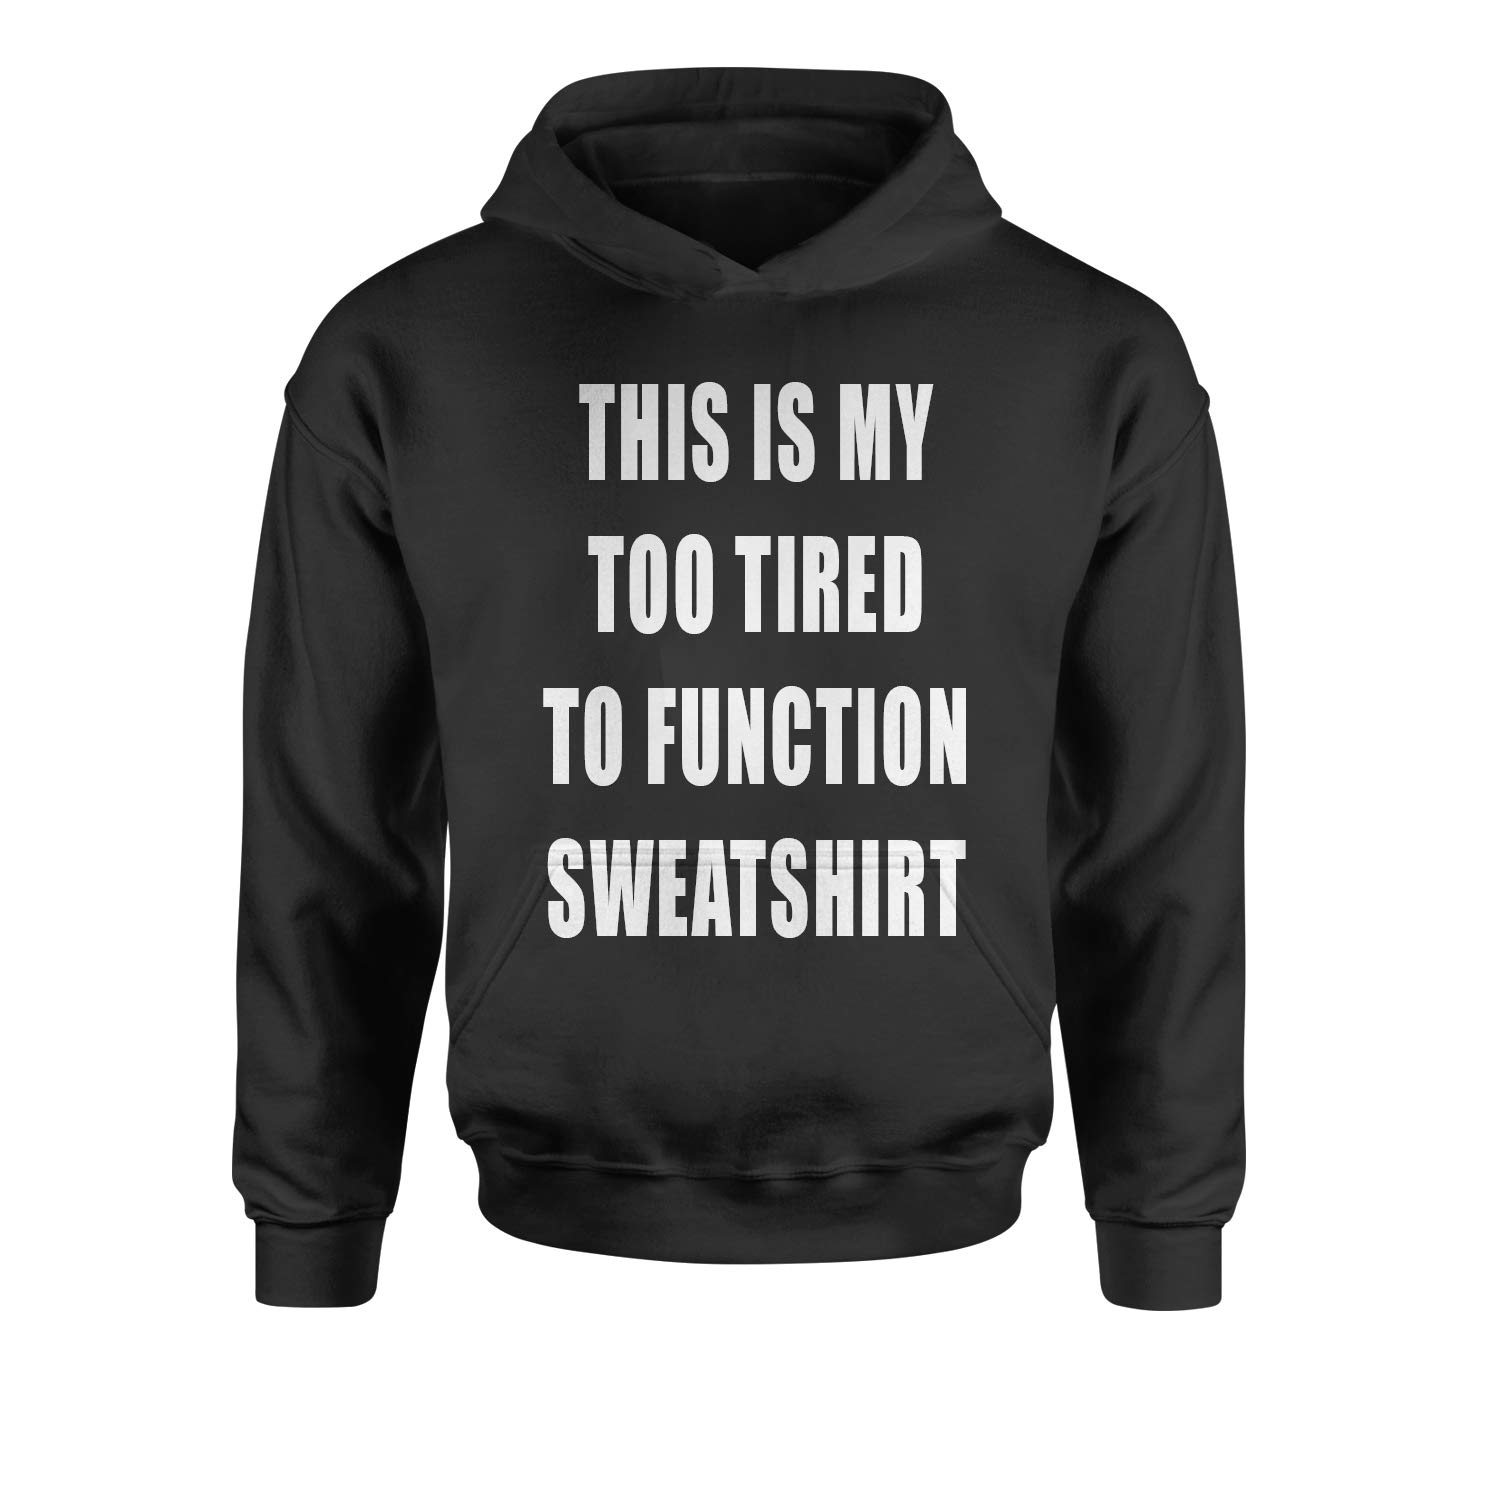 Motivated Culture This is My Too Tired to Function Sweatshirt Youth-Sized Hoodie